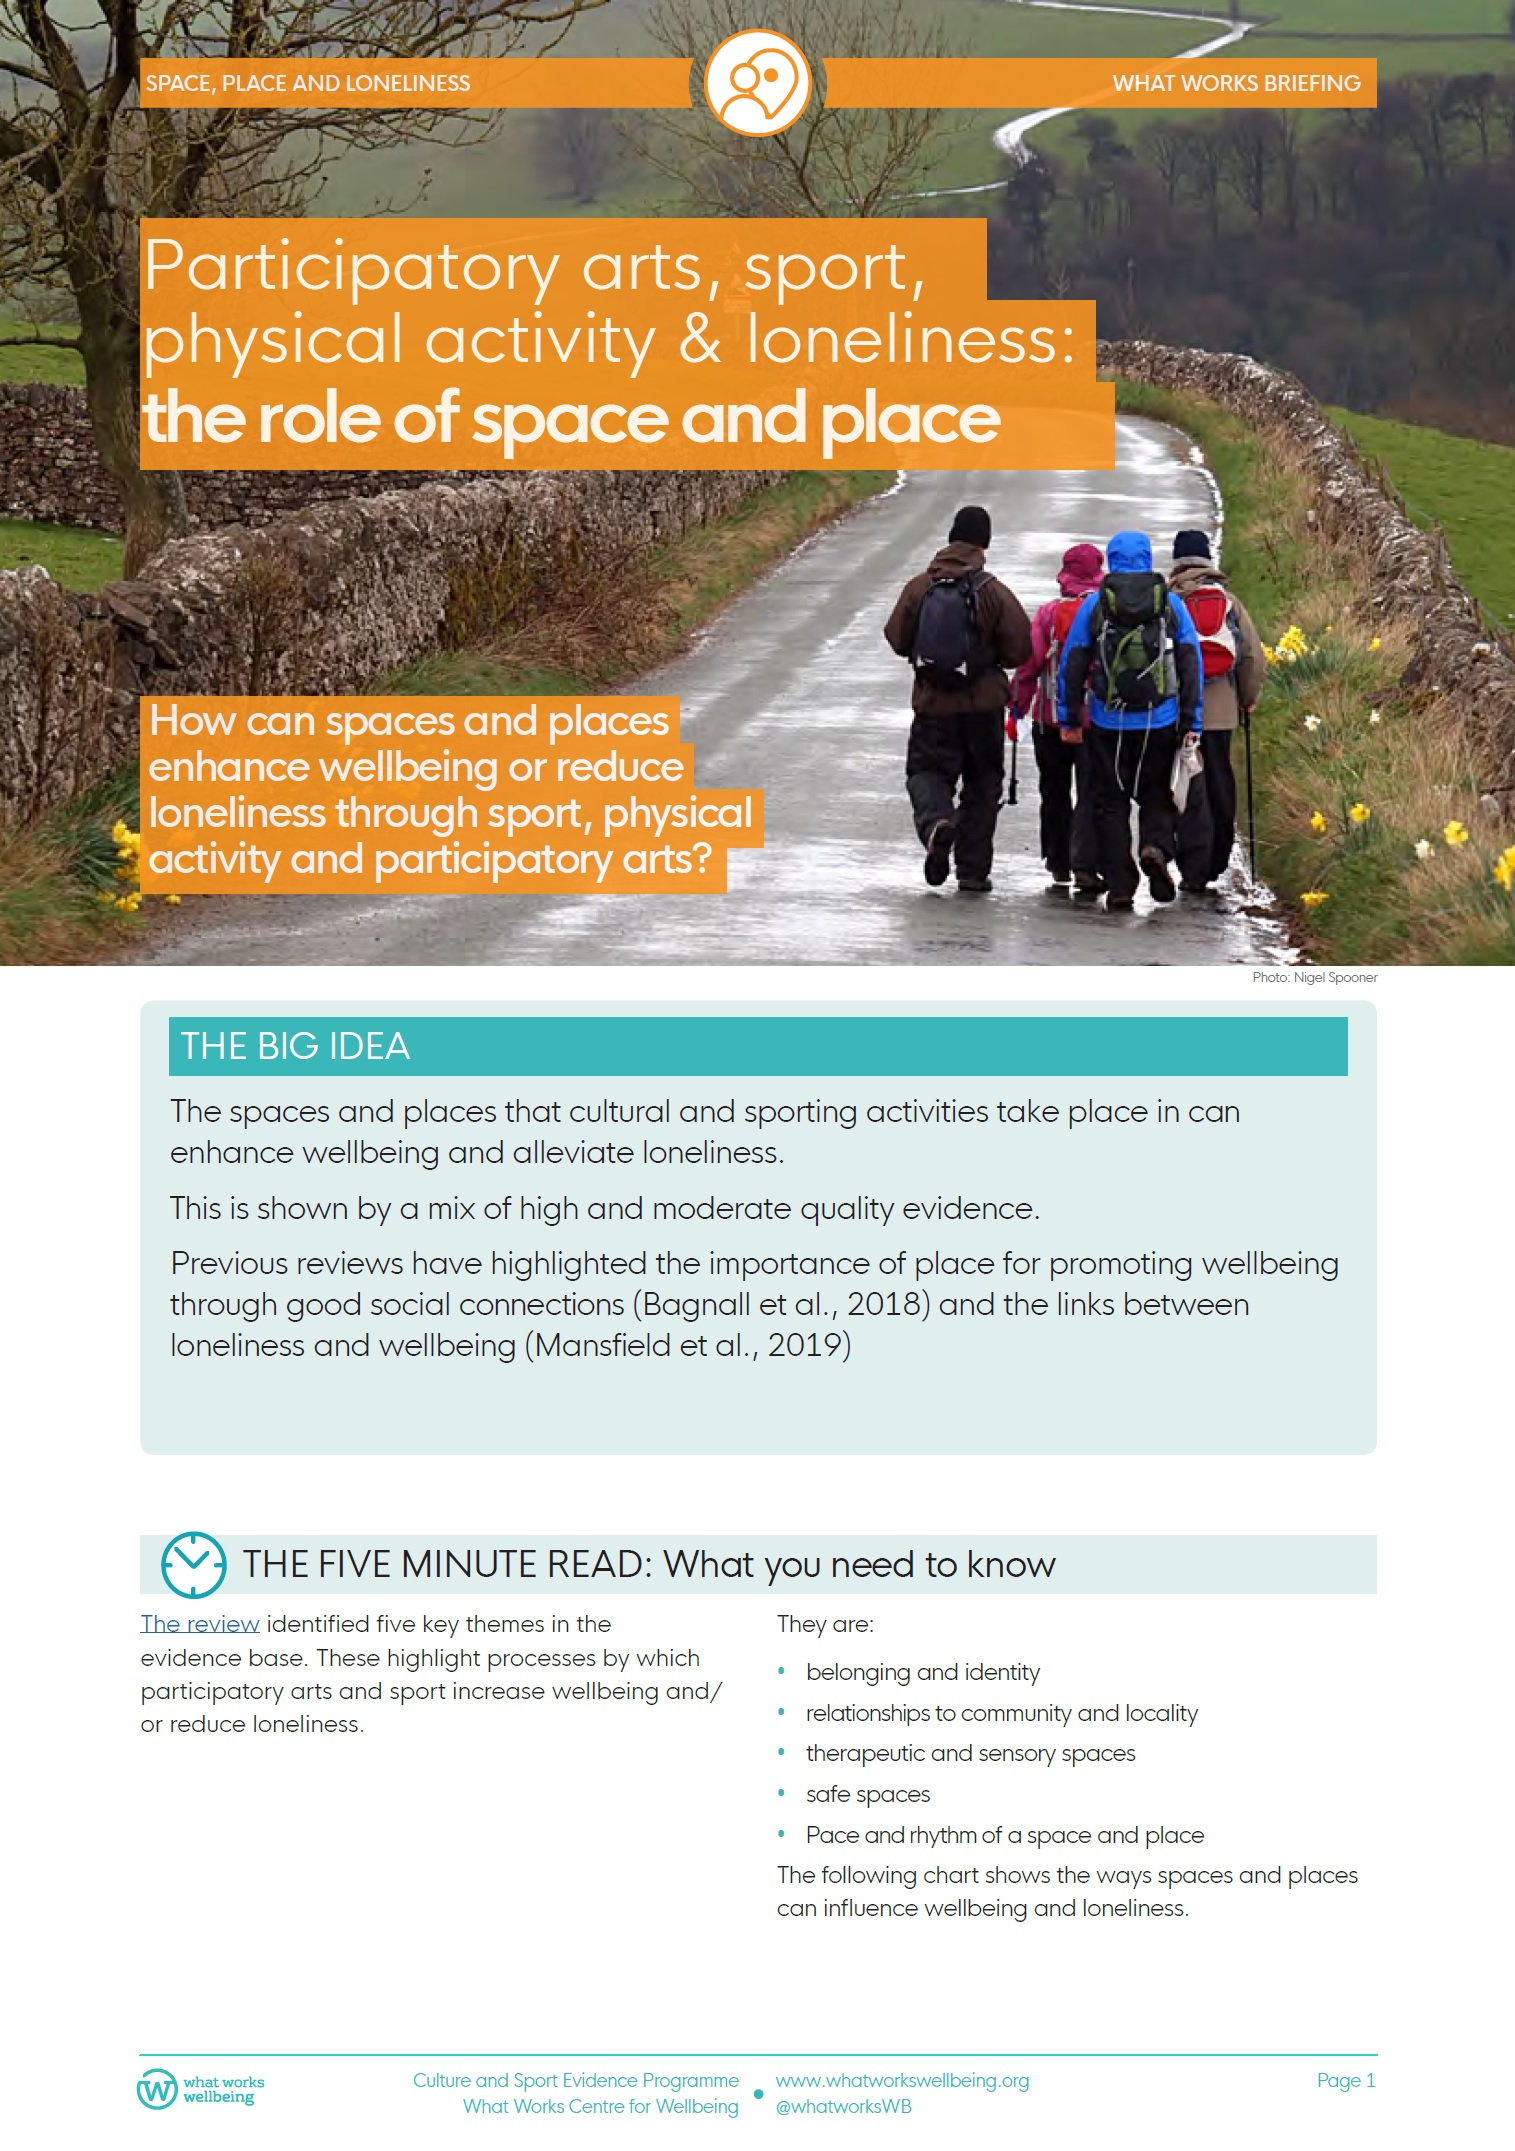 Participatory arts, sport, physical activity & loneliness: the role of space and place